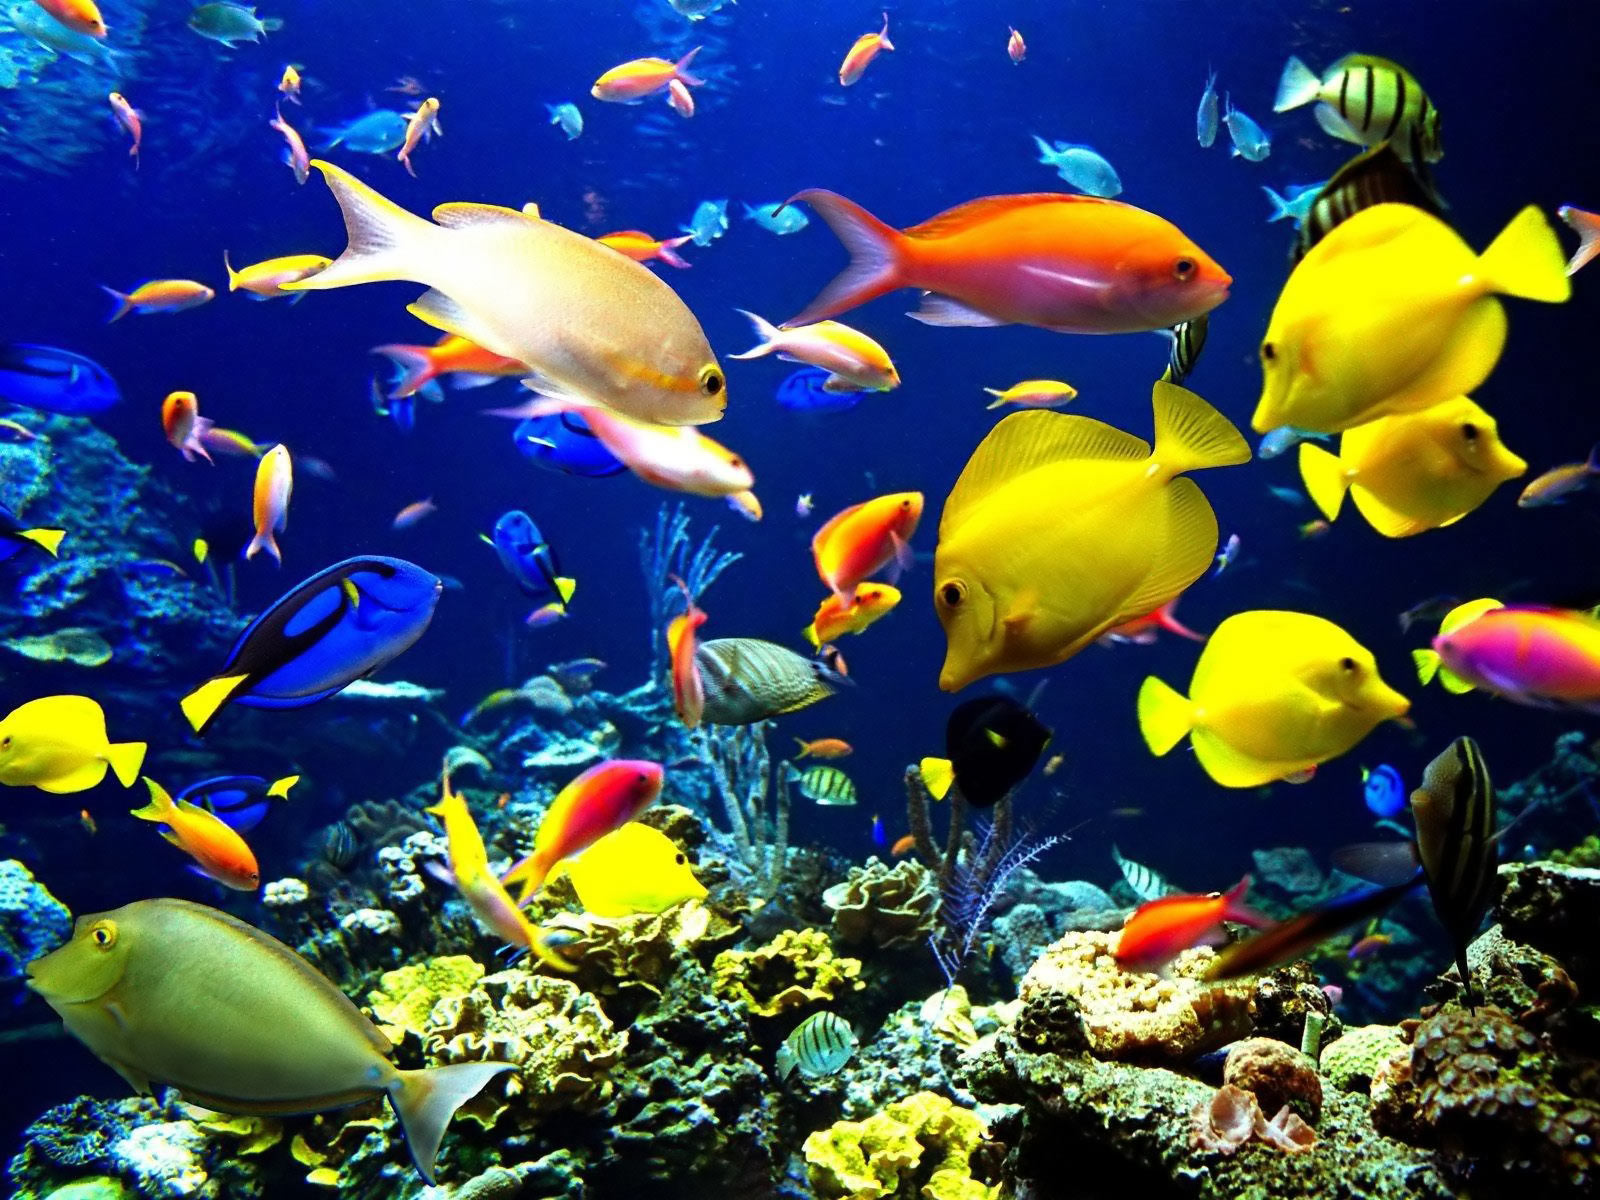 Tropical freshwater aquarium fish pictures just for sharing Types of fish aquarium